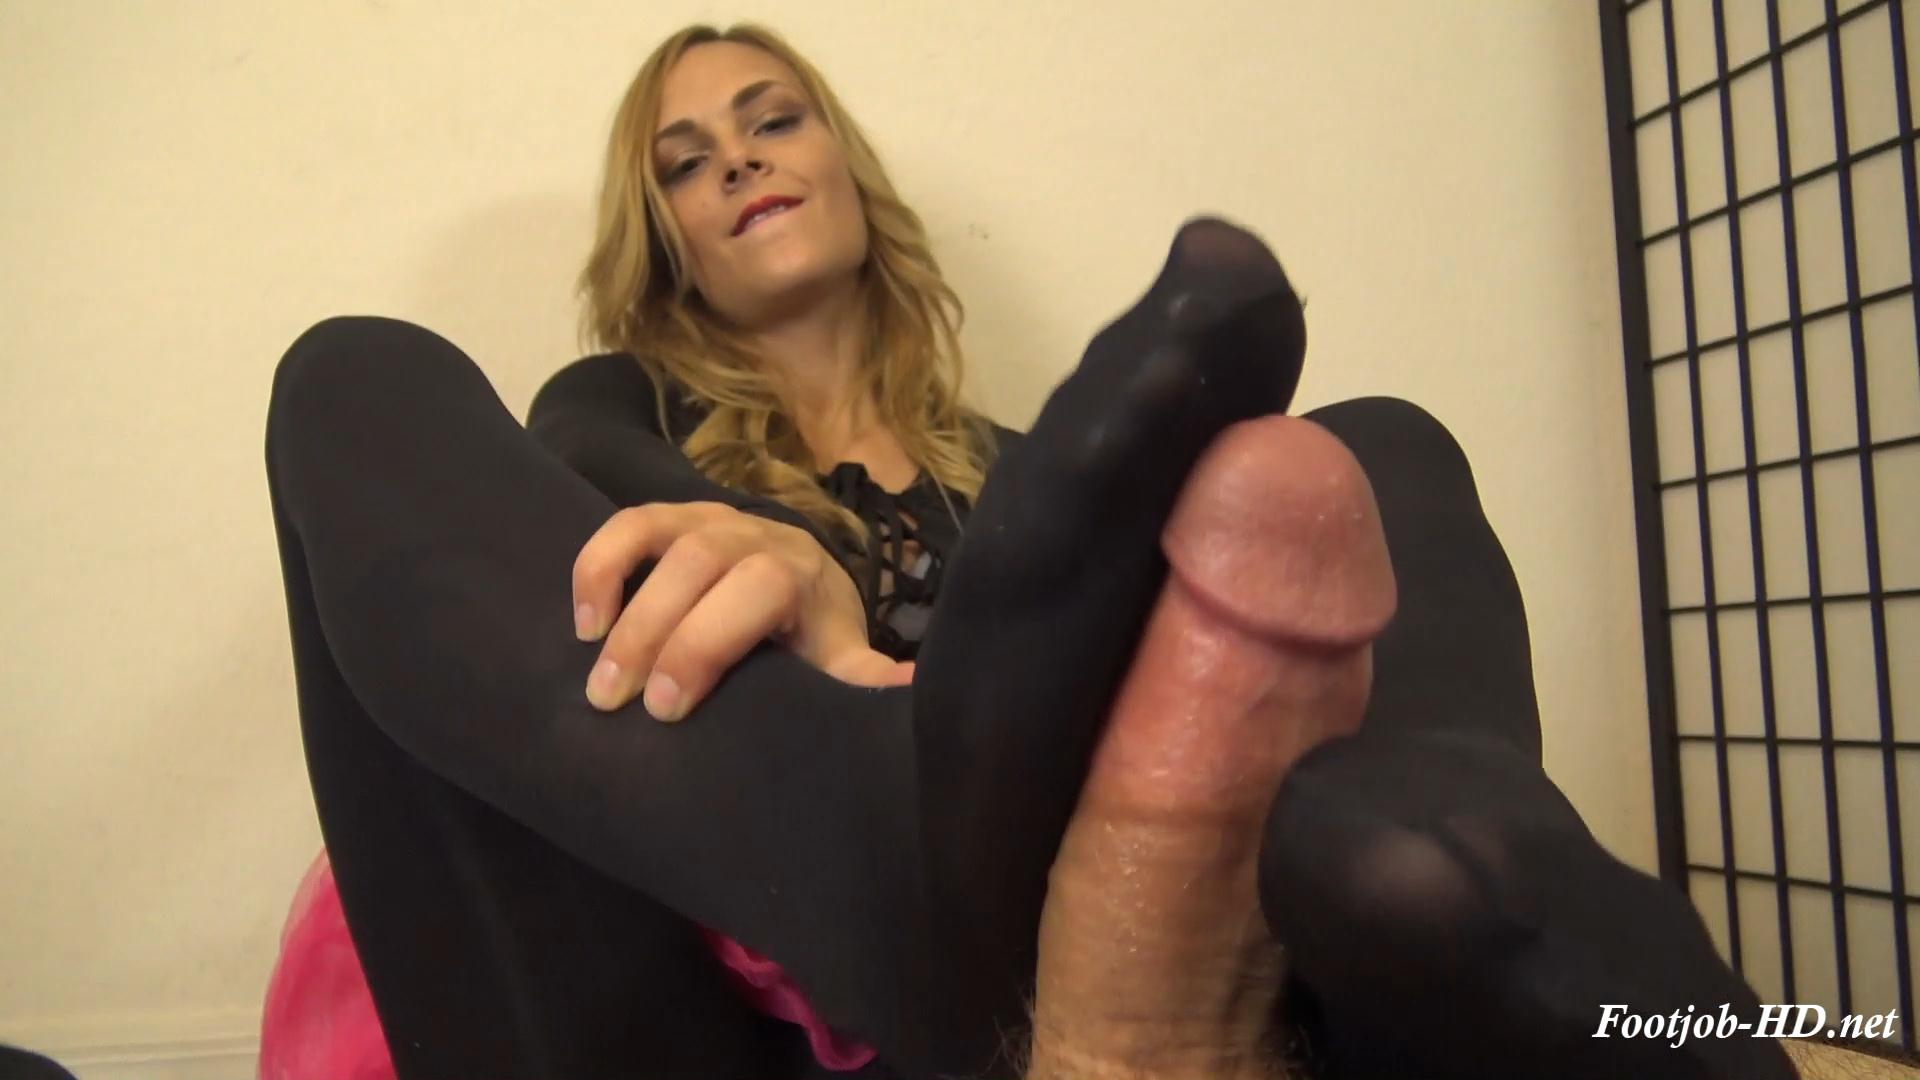 BALLERINA JENNY JETT'S BLACK TIGHTS FOOTJOB – The Foot Fantasy!!! – Jenny Jett